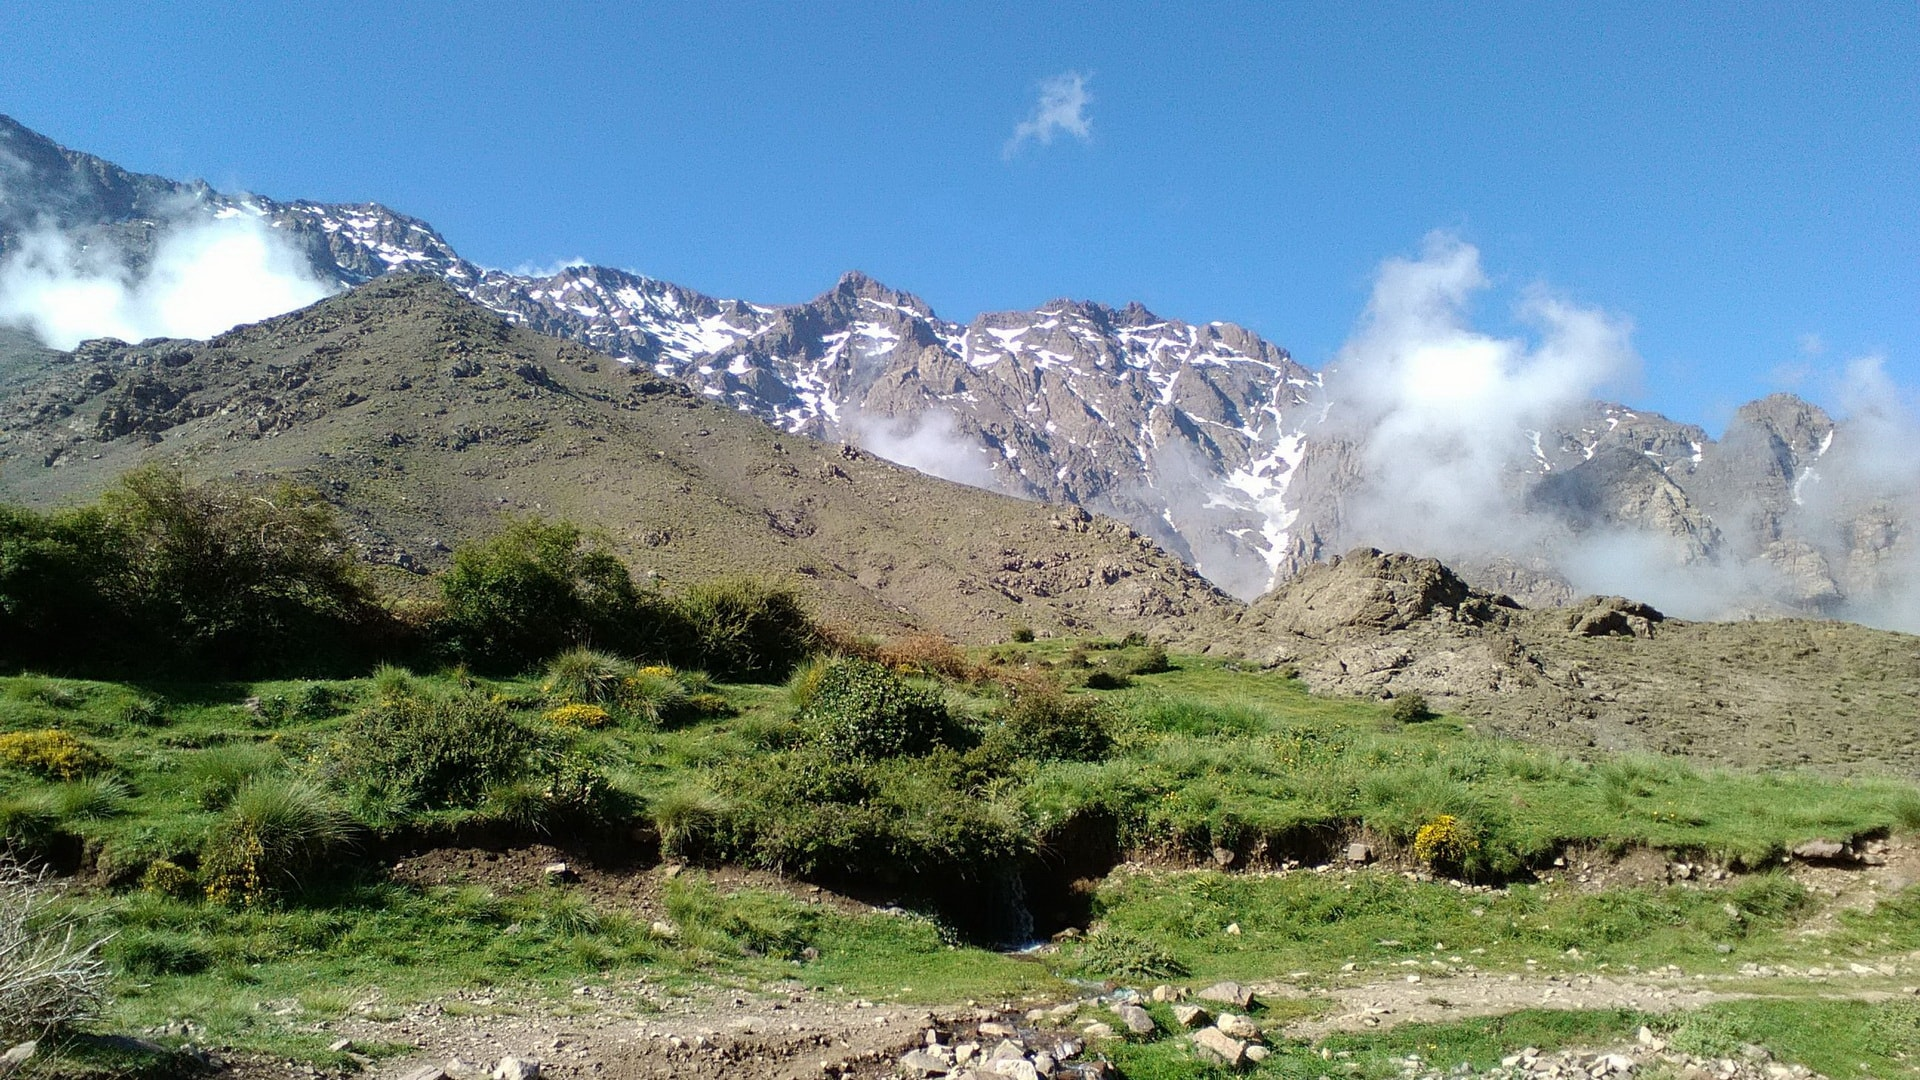 pathfinders treks - toubkal summit challenge trek 6 day